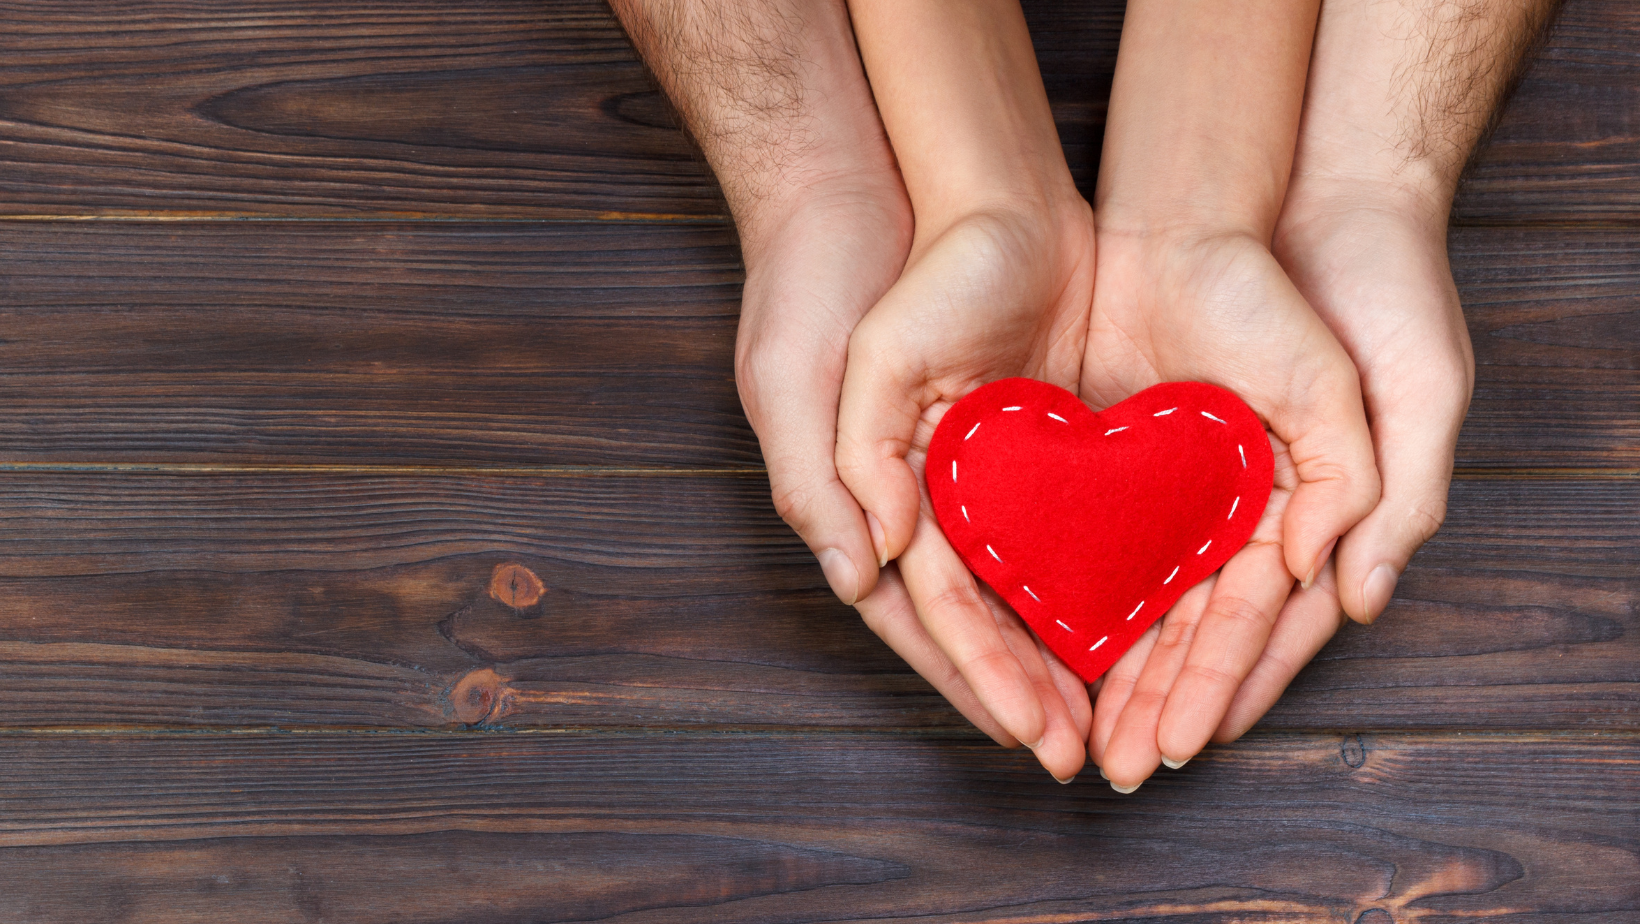 5 Quick Tips Before You Donate